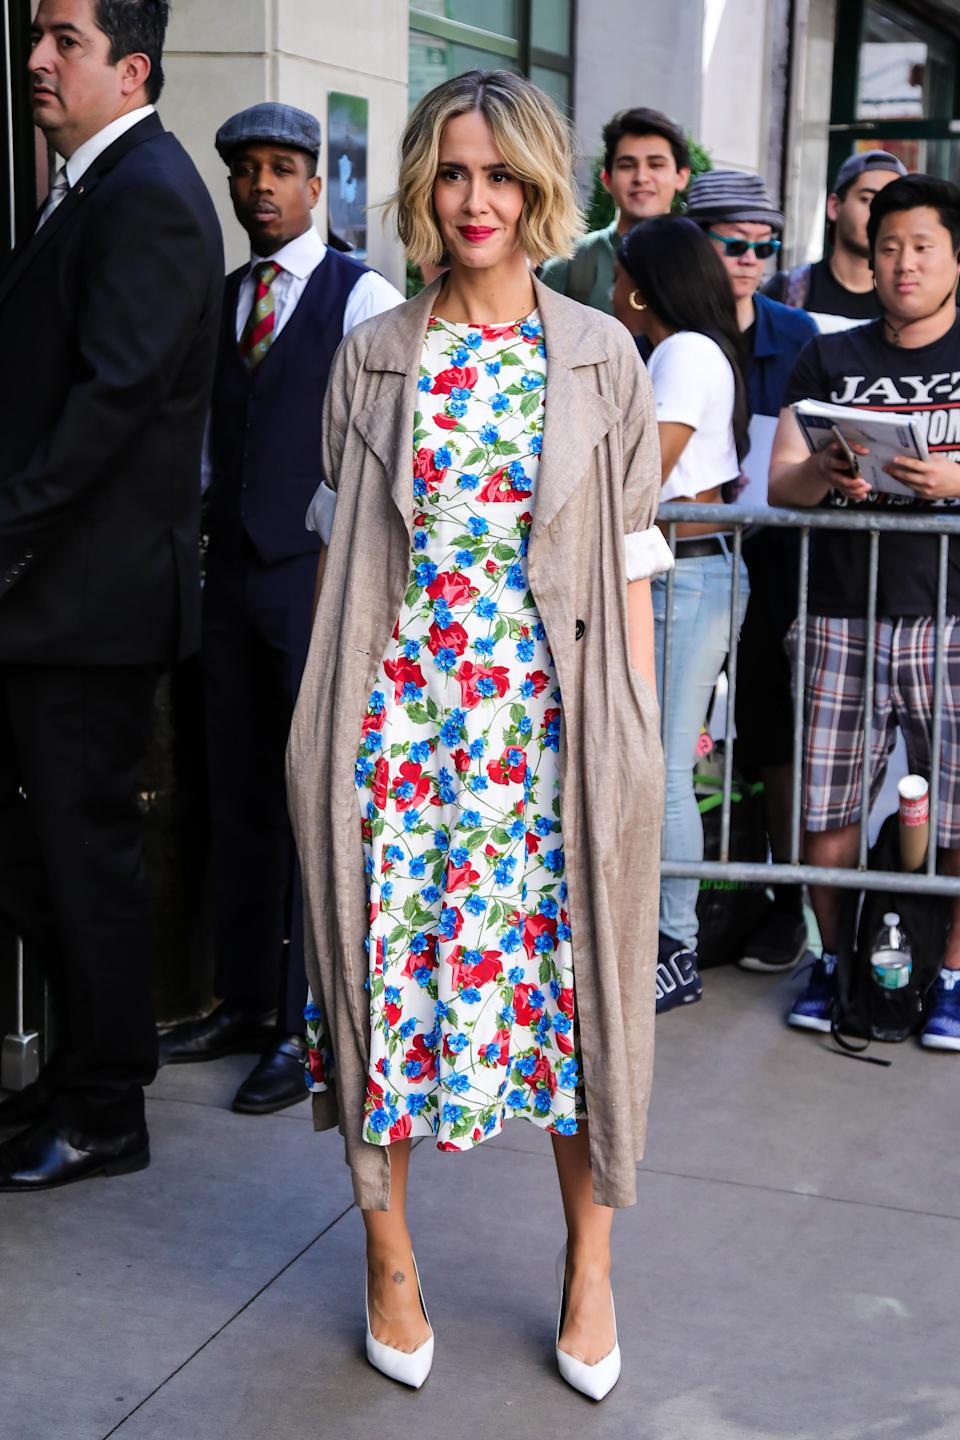 <p><span>'Ocean's 8' star Sarah Paulson brightened up our moods in this spring-worthy floral dress which she wore under a light trench incase the chill set in. <em>[Photo: Getty]</em></span> </p>